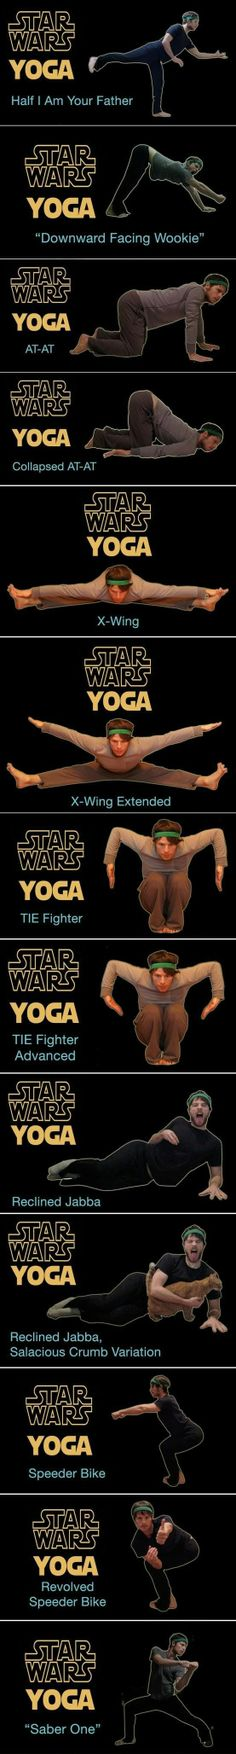 Star Wars yoga!!